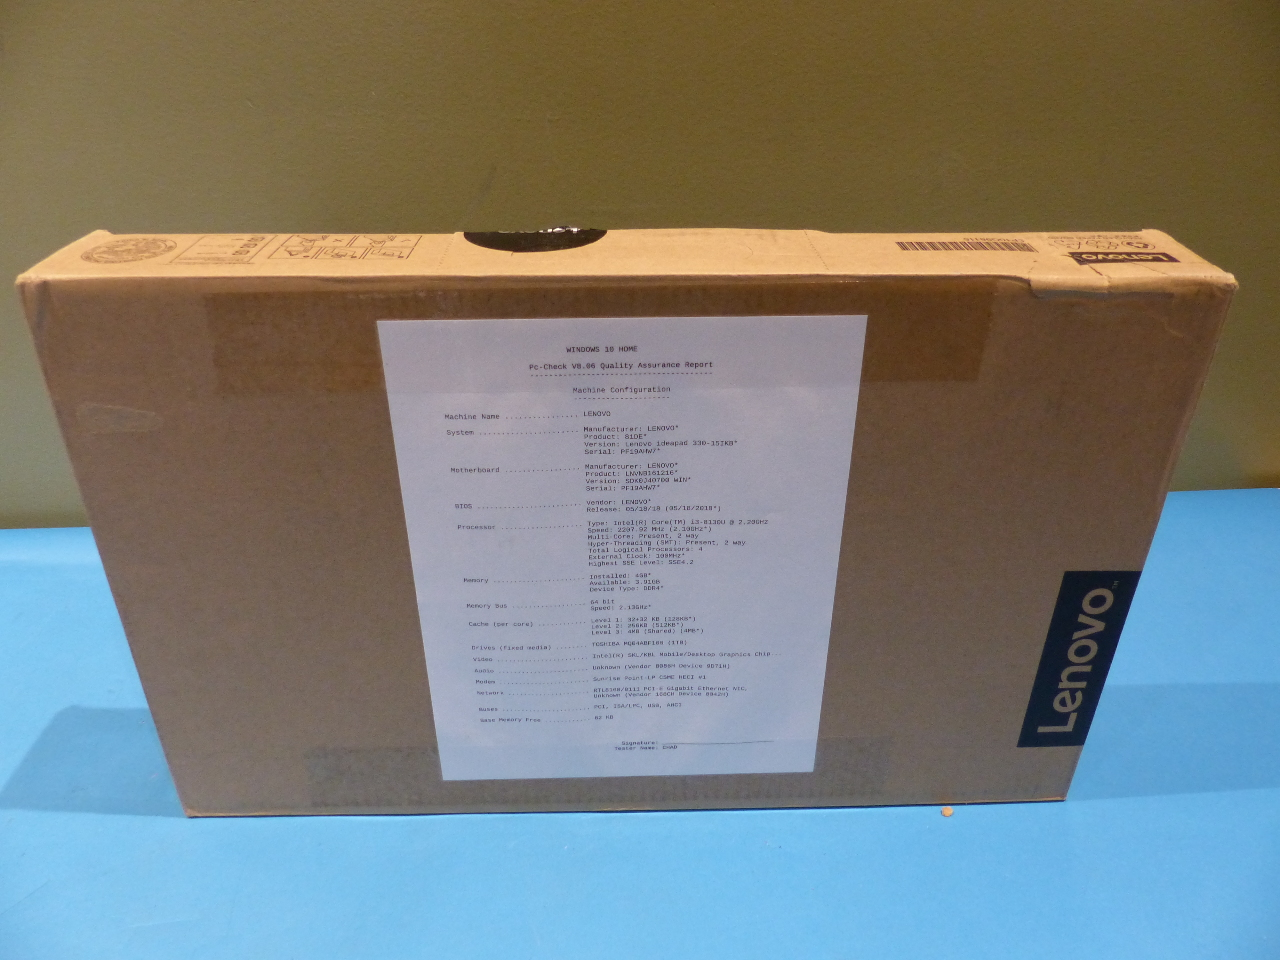 Details about LENOVO IDEAPAD 81DE00T1US 2 2GHZ 4GB 1TB UHD 620 WIN 10 HOME  LAPTOP PURPLE